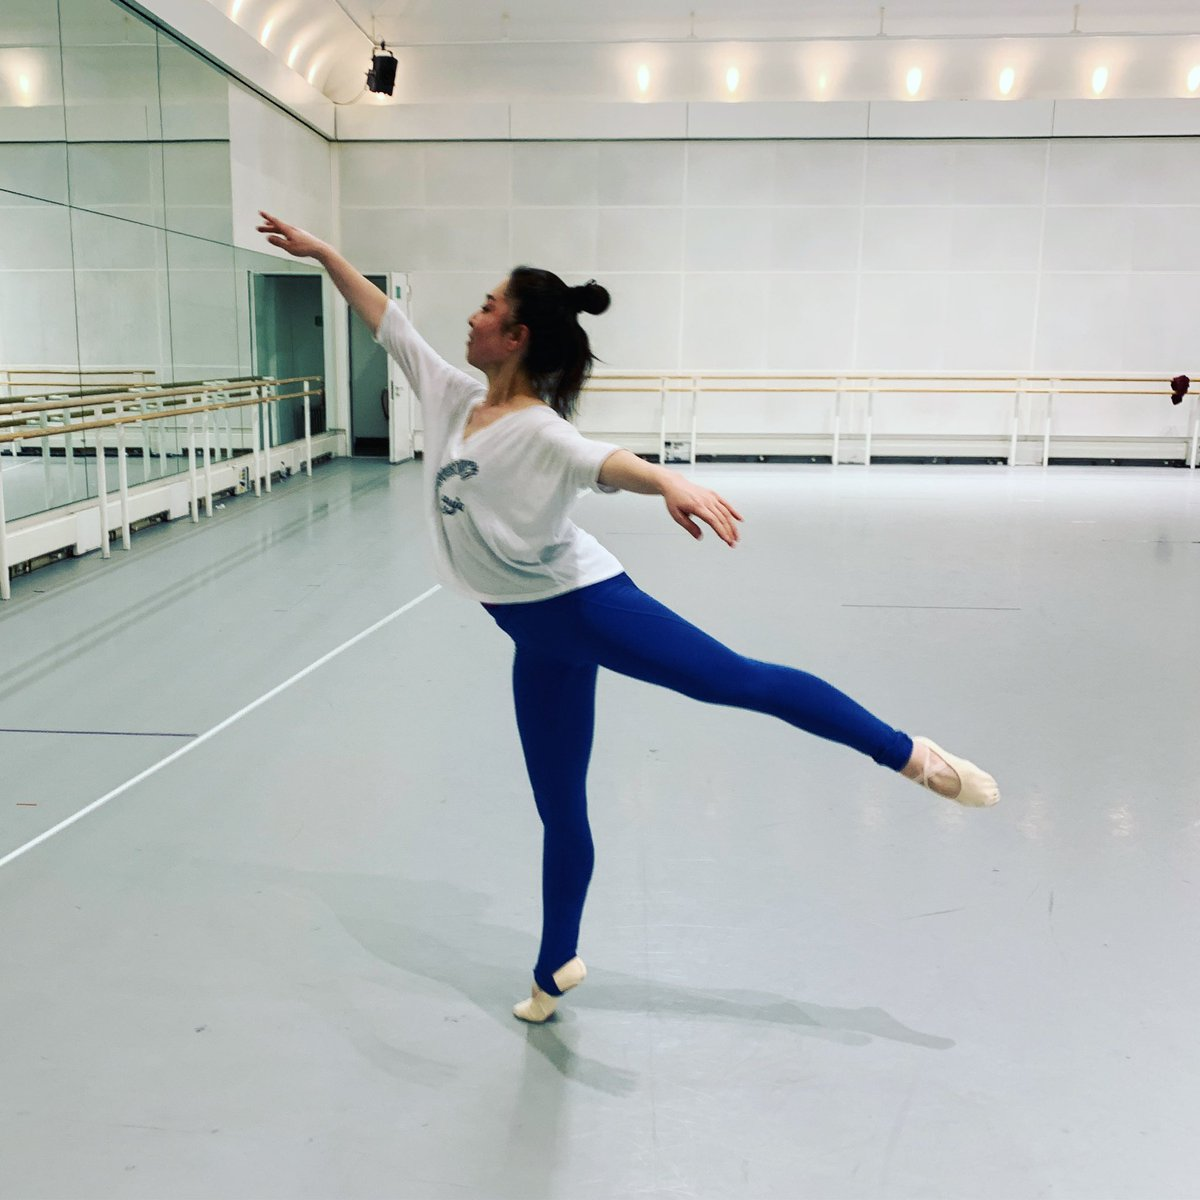 8e7fb32c5 Be sure to catch our Intermediate Sunday Improver class this Sunday 28th at  the Royal Opera House taught by @Bennet76. Book online via our website.